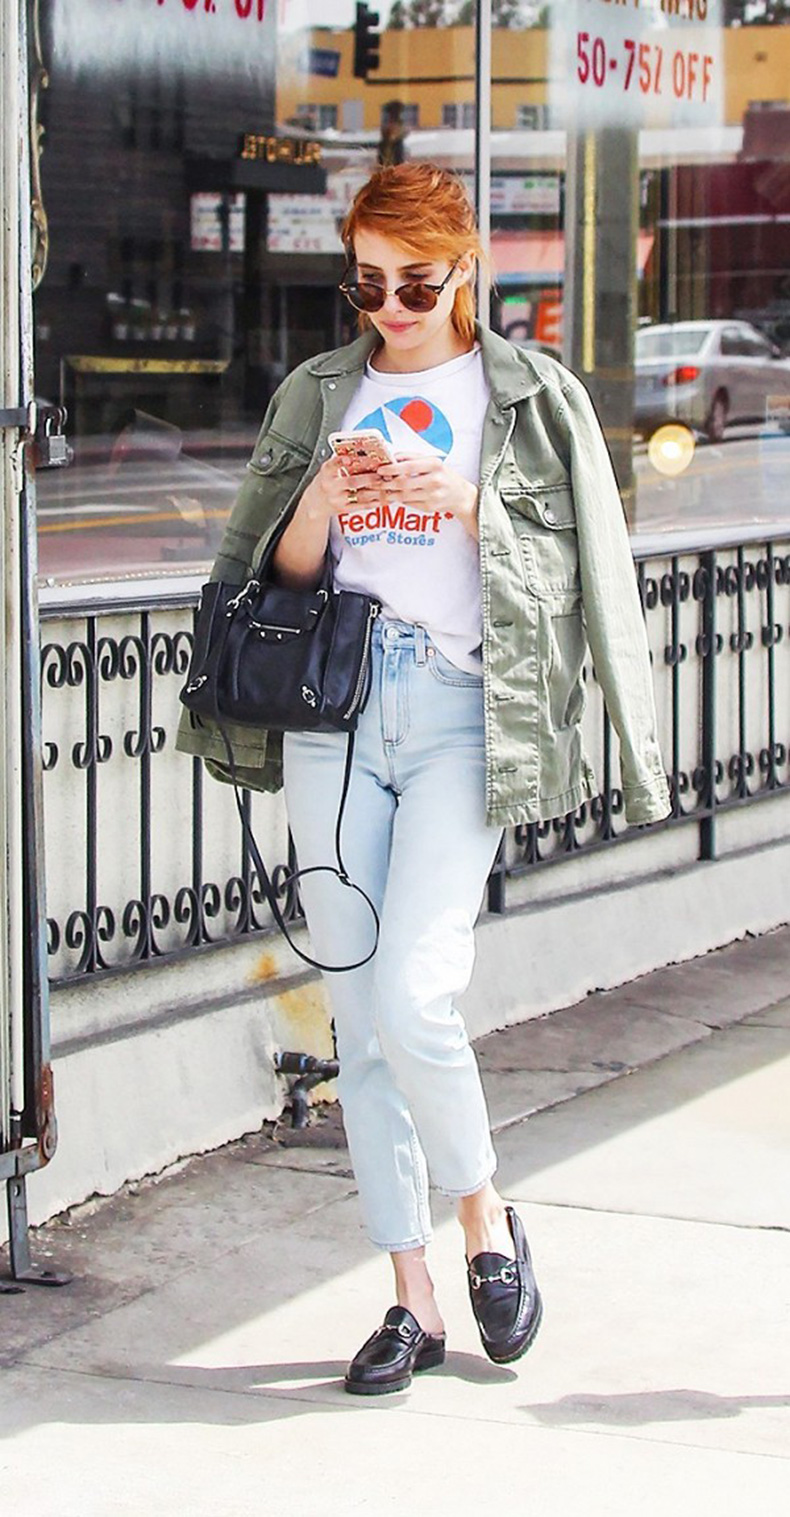 5-cute-celeb-outfits-you-can-re-create-for-way-less-1752890-1461990497.600x0c